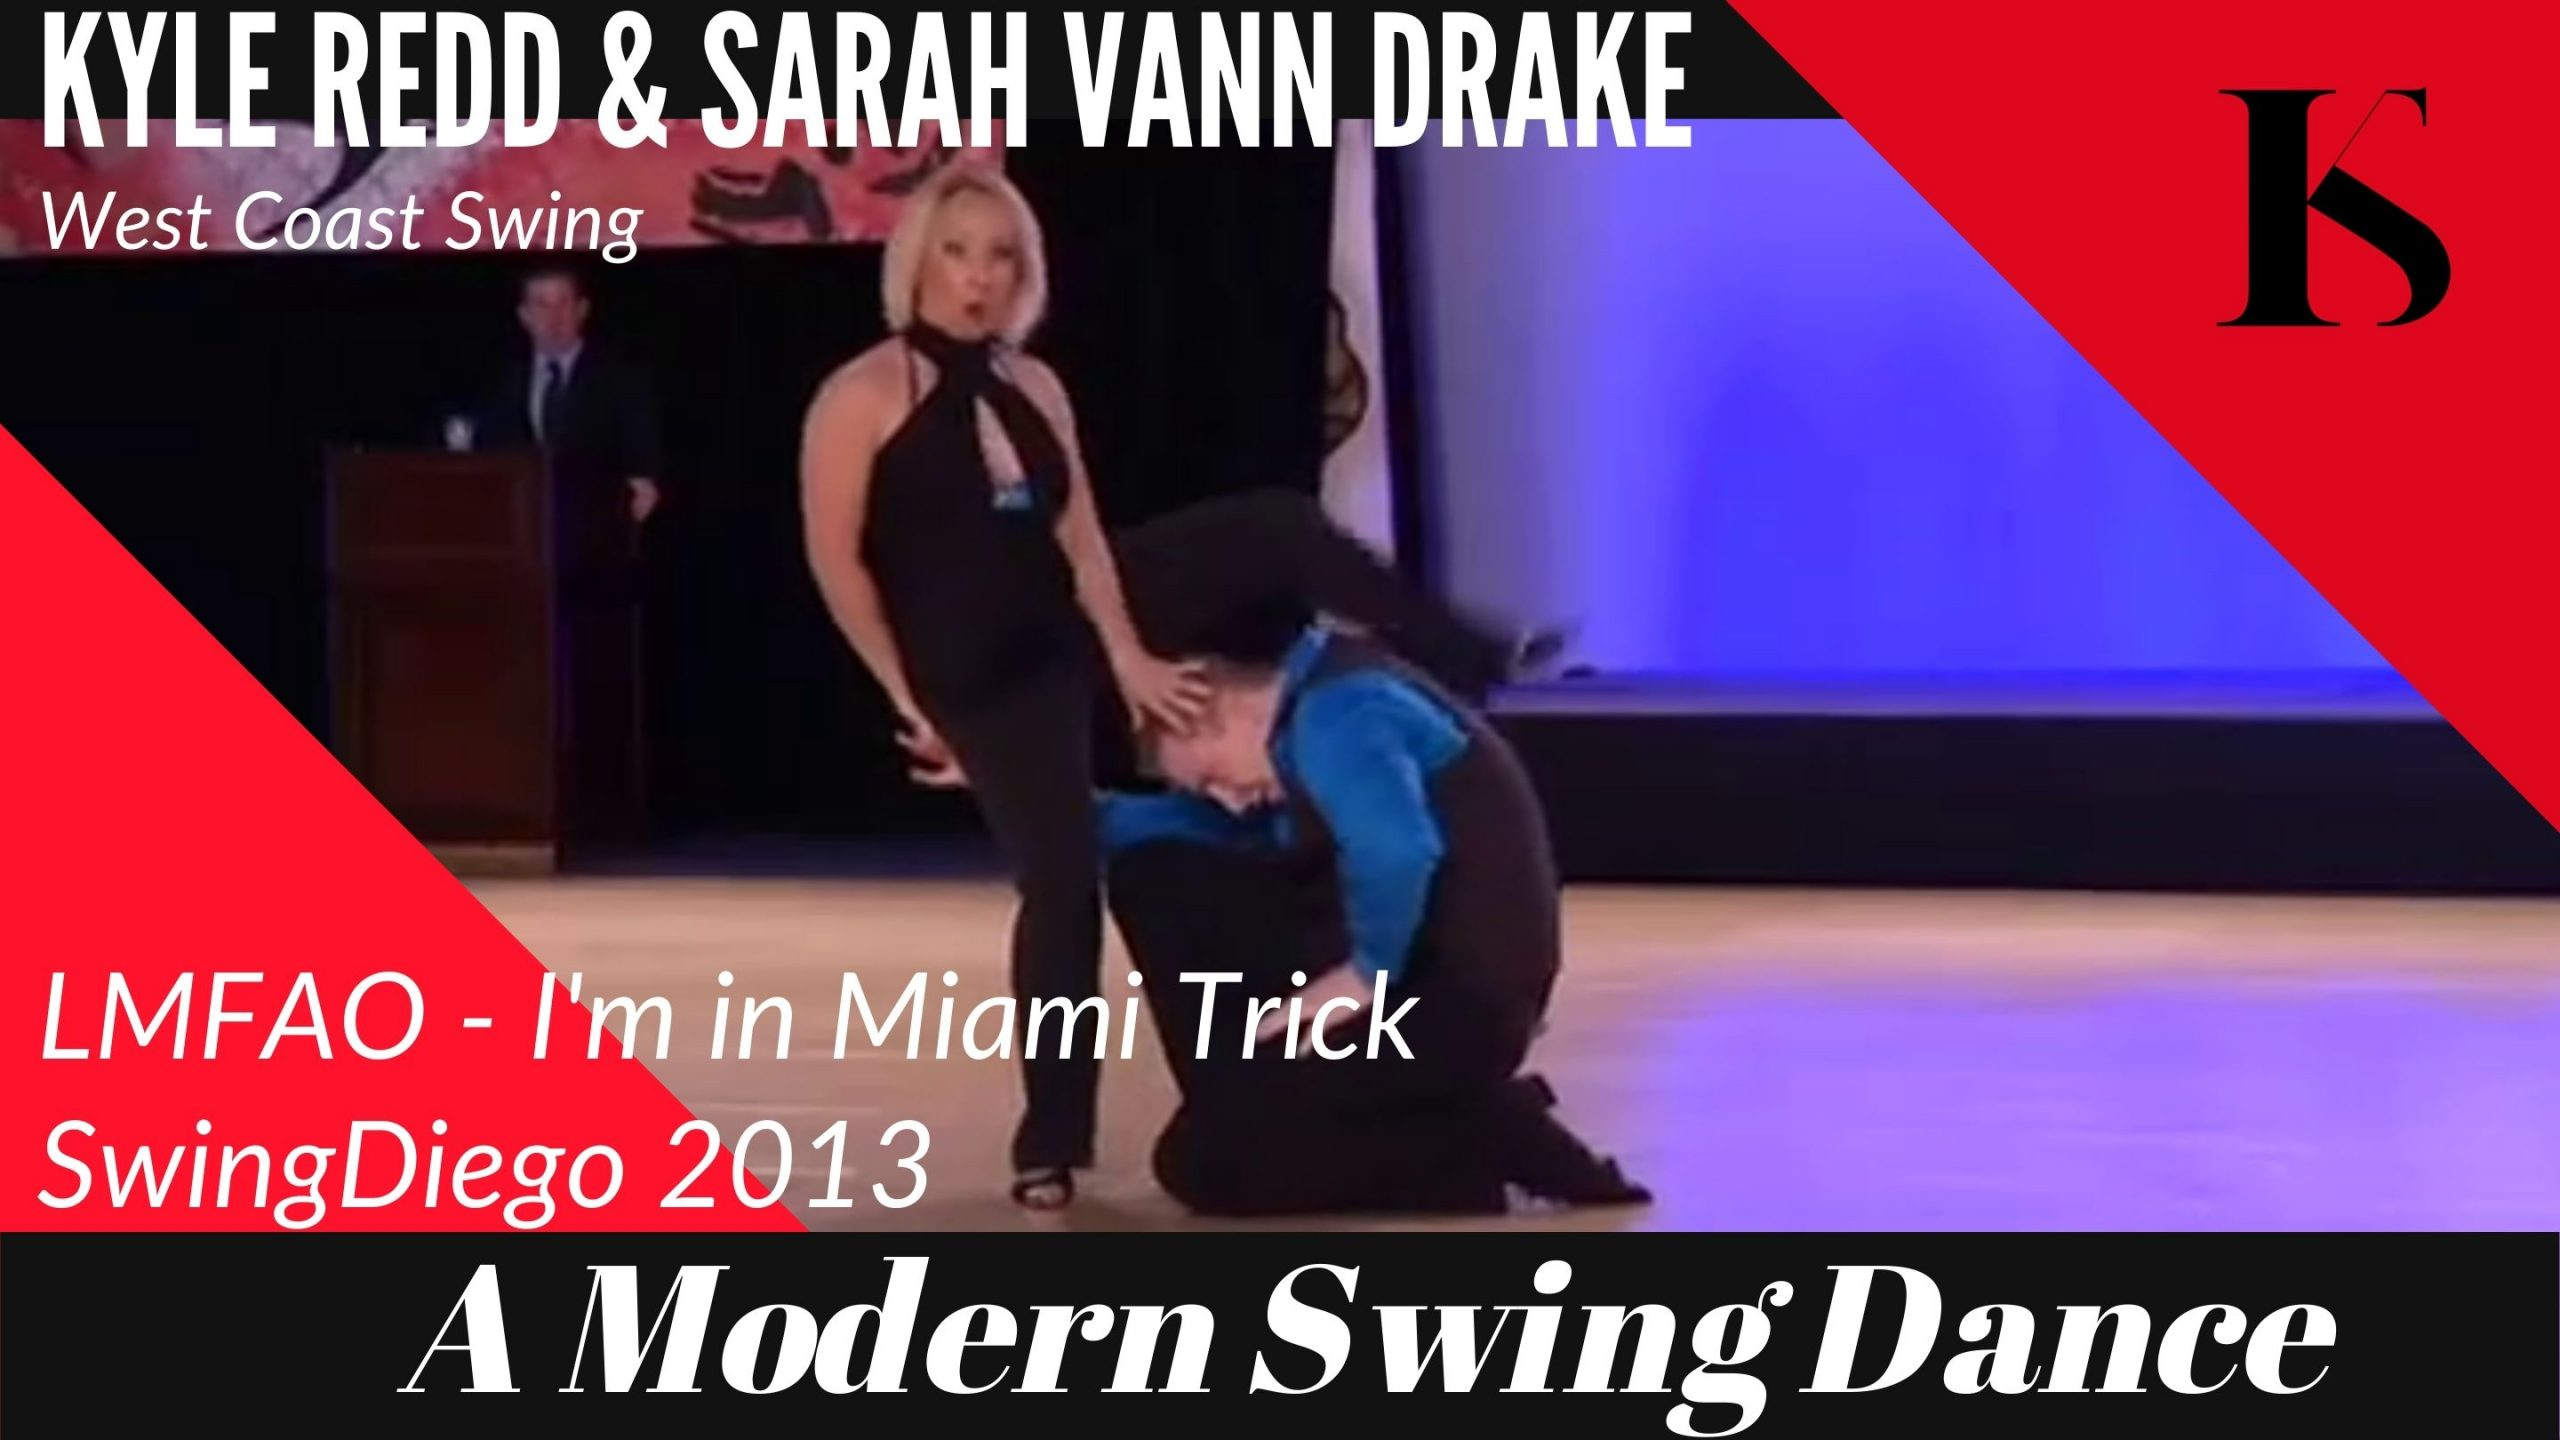 2013 -  Swingdiego - I'm in Miami Trick - LMFAO